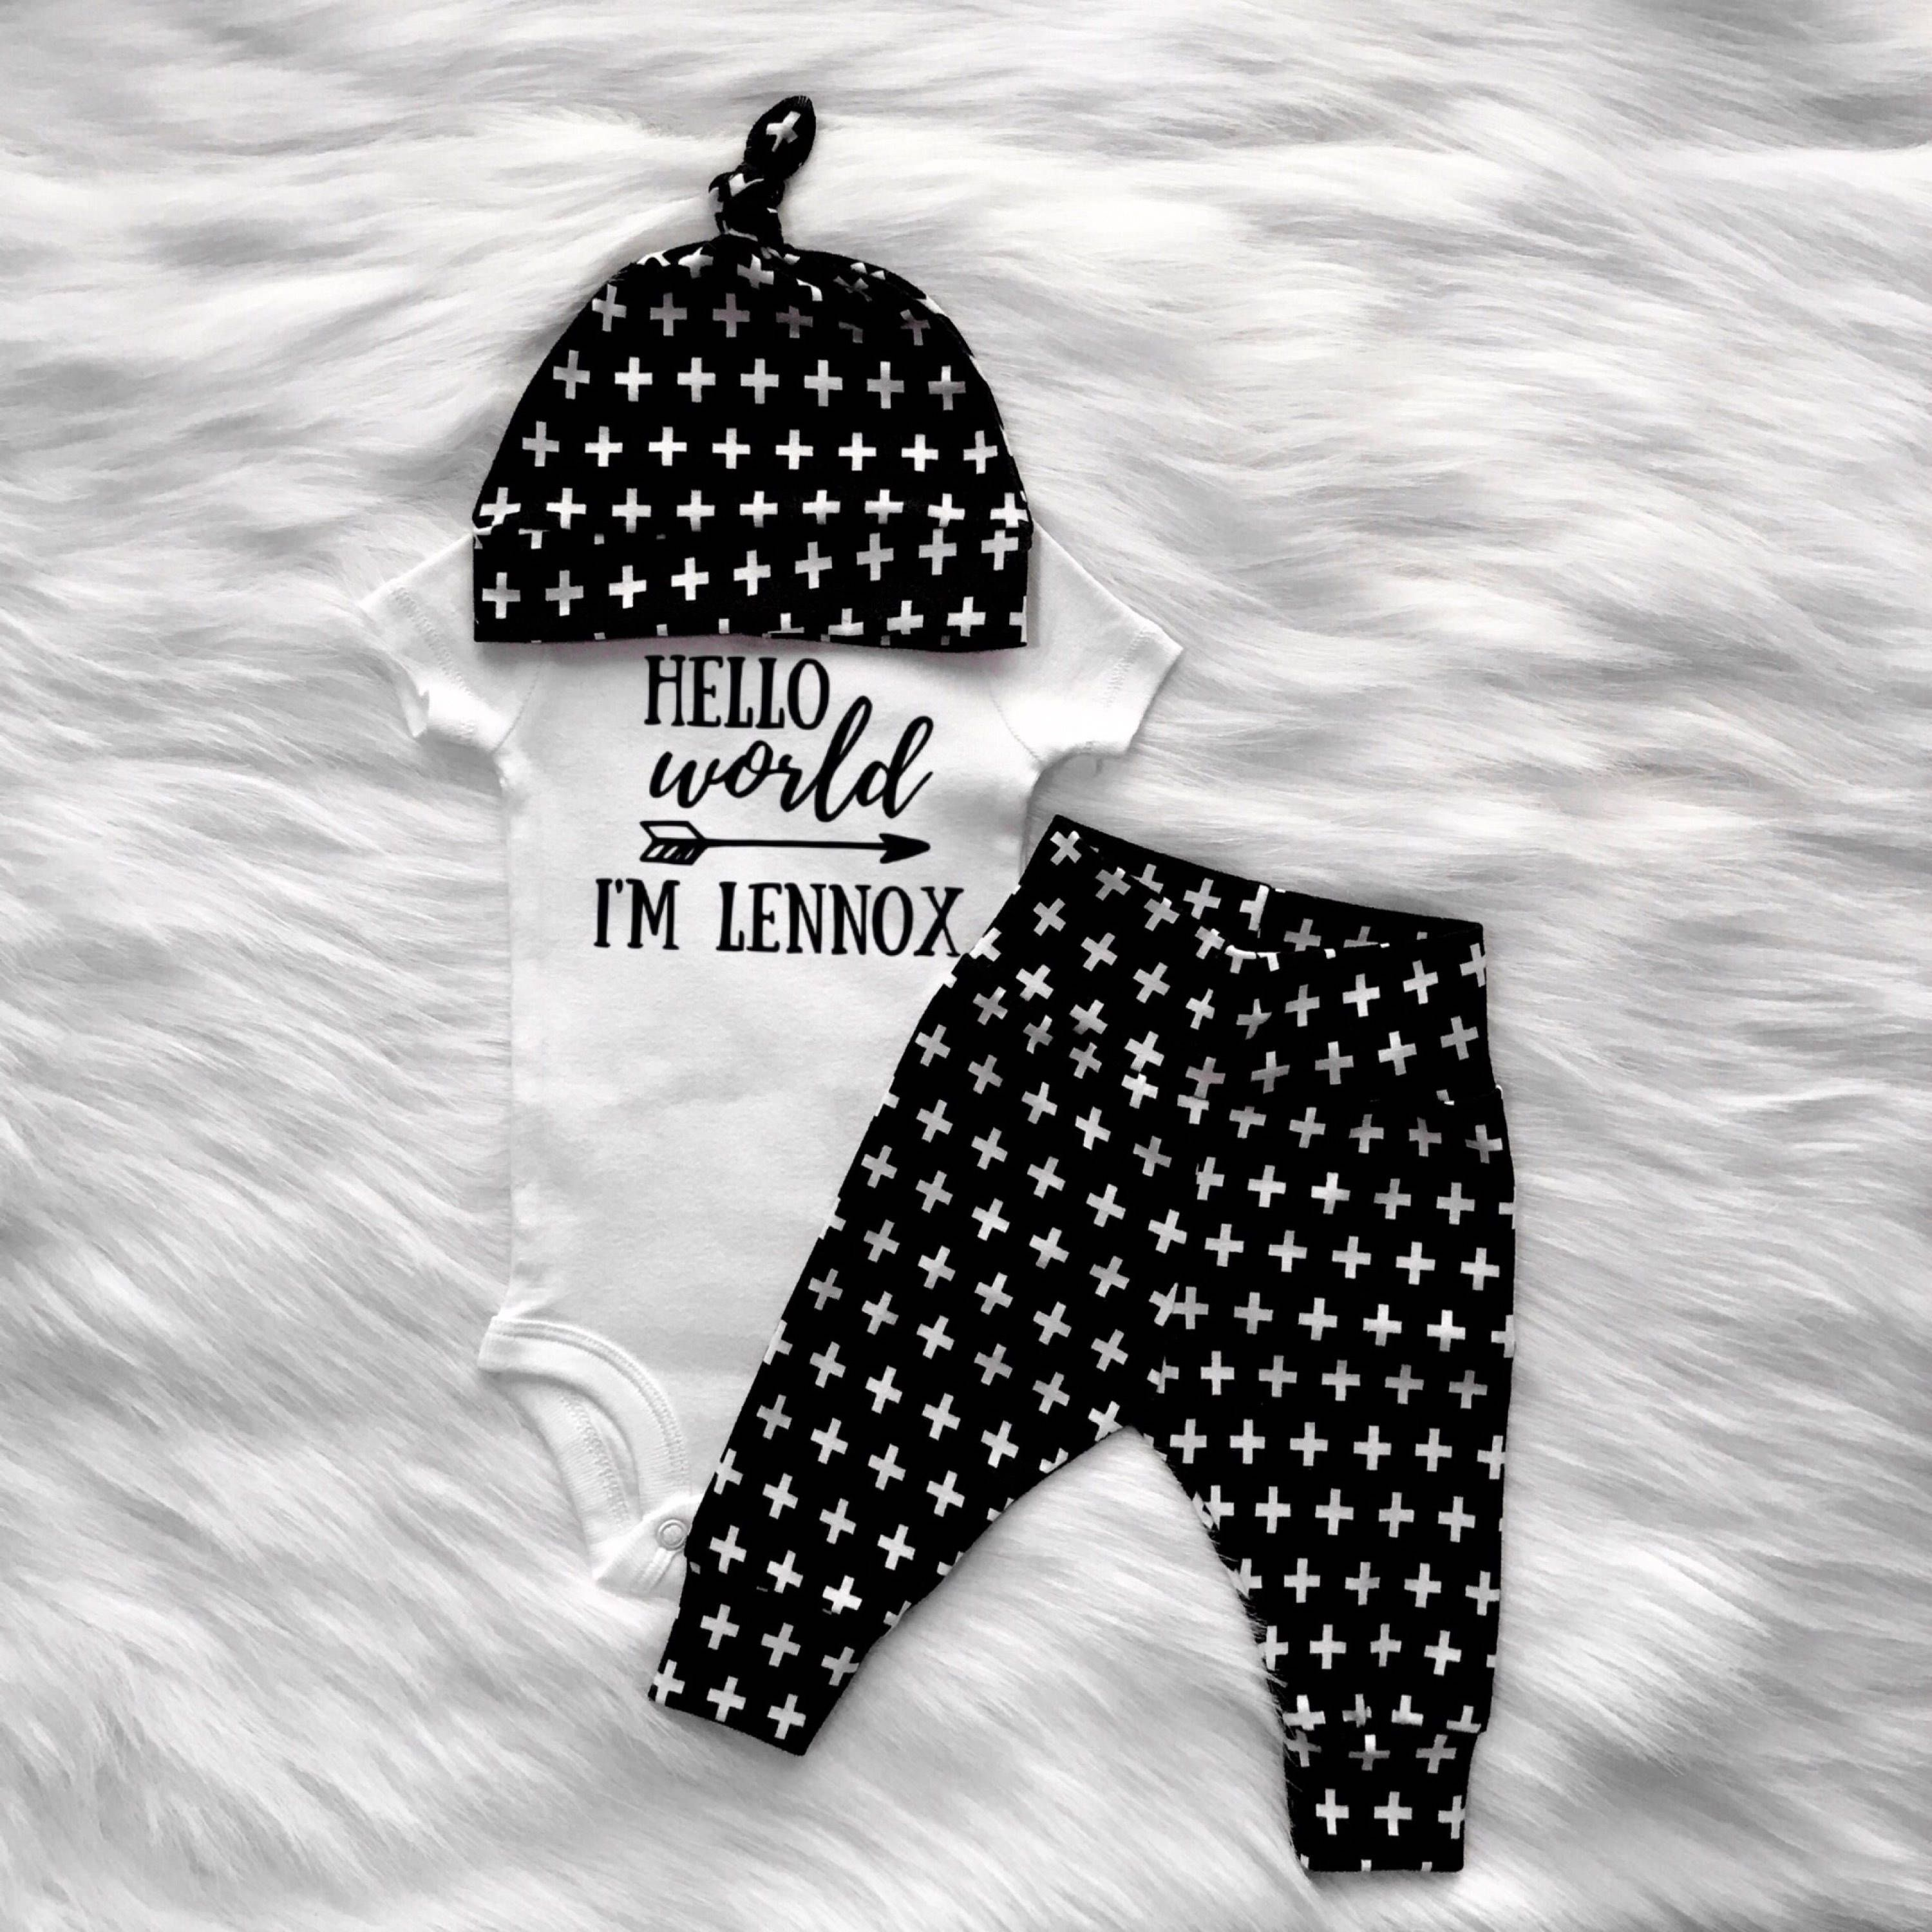 popular etsy shops popular baby clothes popular etsy boutiques for